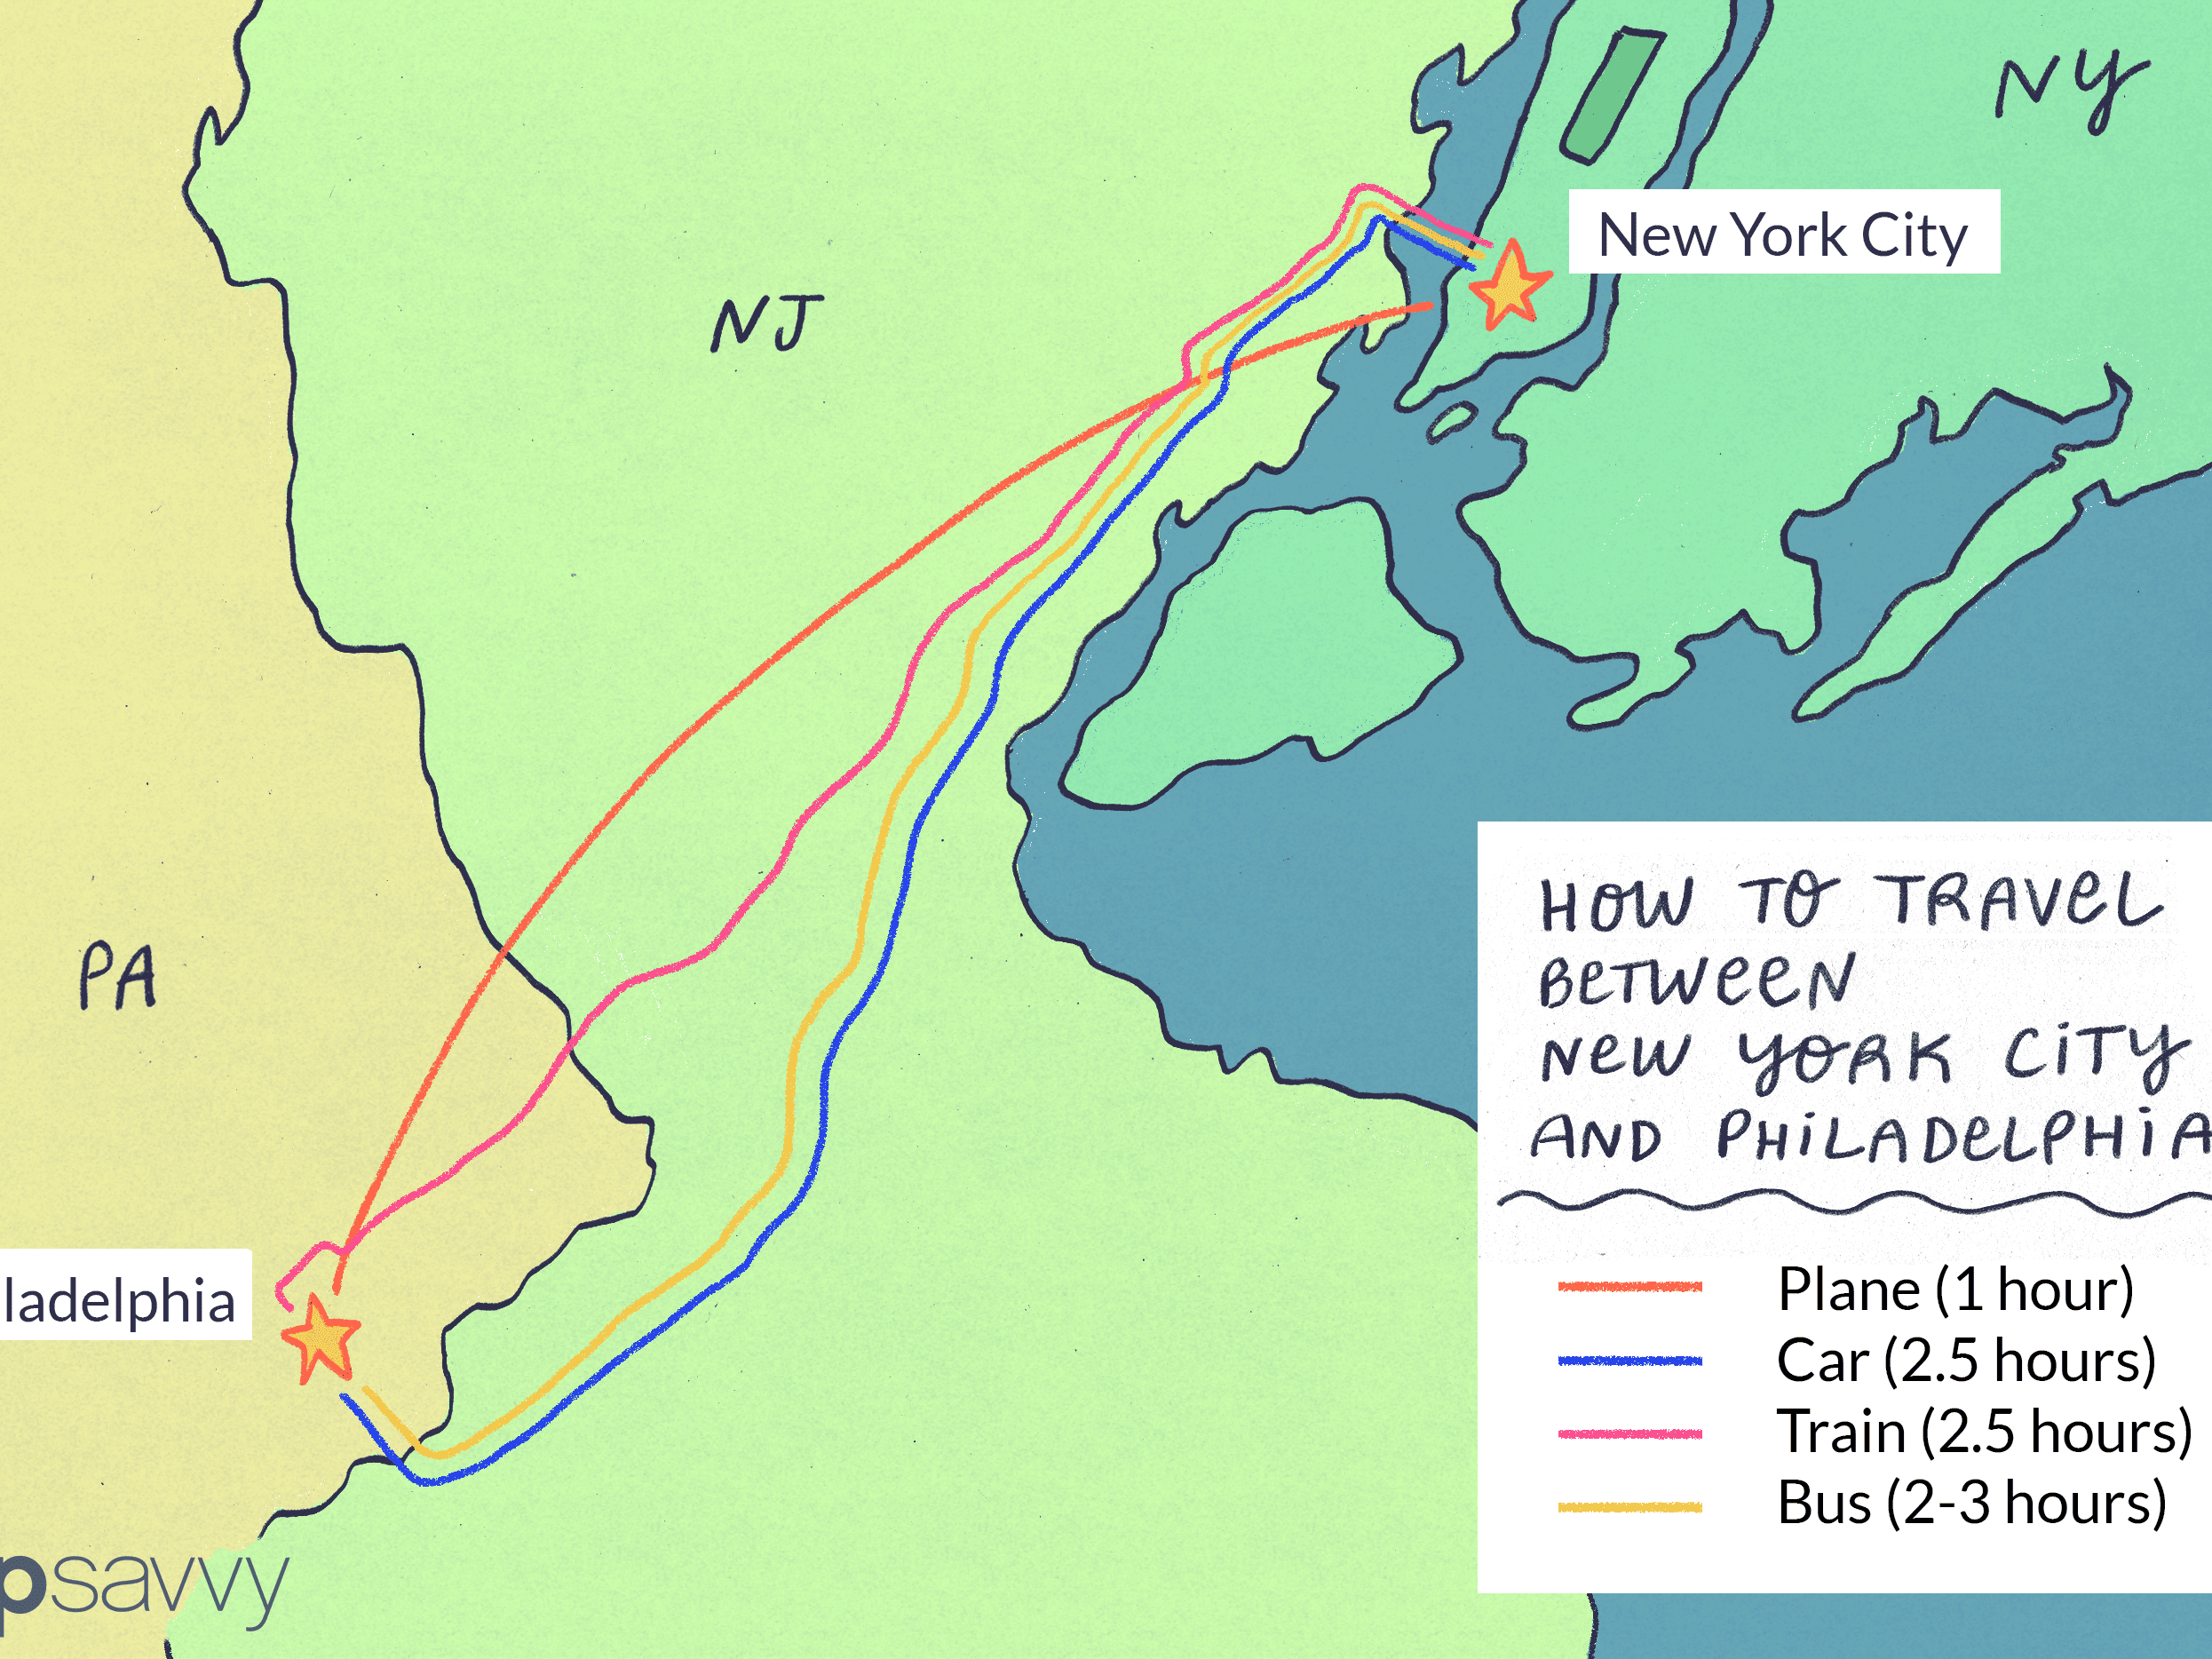 Getting to and From New York City and Philadelphia on map of ny towns, map york pa, map of new jersey and pennsylvania border, map of ny and pennsylvania, map of western pennsylvania railroads, map of pennsylvania pa, map of upstate new york, map of ohio and ny, map ohio pennsylvania and new york, map of ma and ny, map of pennsylvania with cities, map of ny and ct, map of connecticut and new york new jersey, new york map binghamton ny, map of nj ny border, map of westfield pa, map of western pa, map of vt and ny, map of pennsylvania and new york state, map of nc and ny,